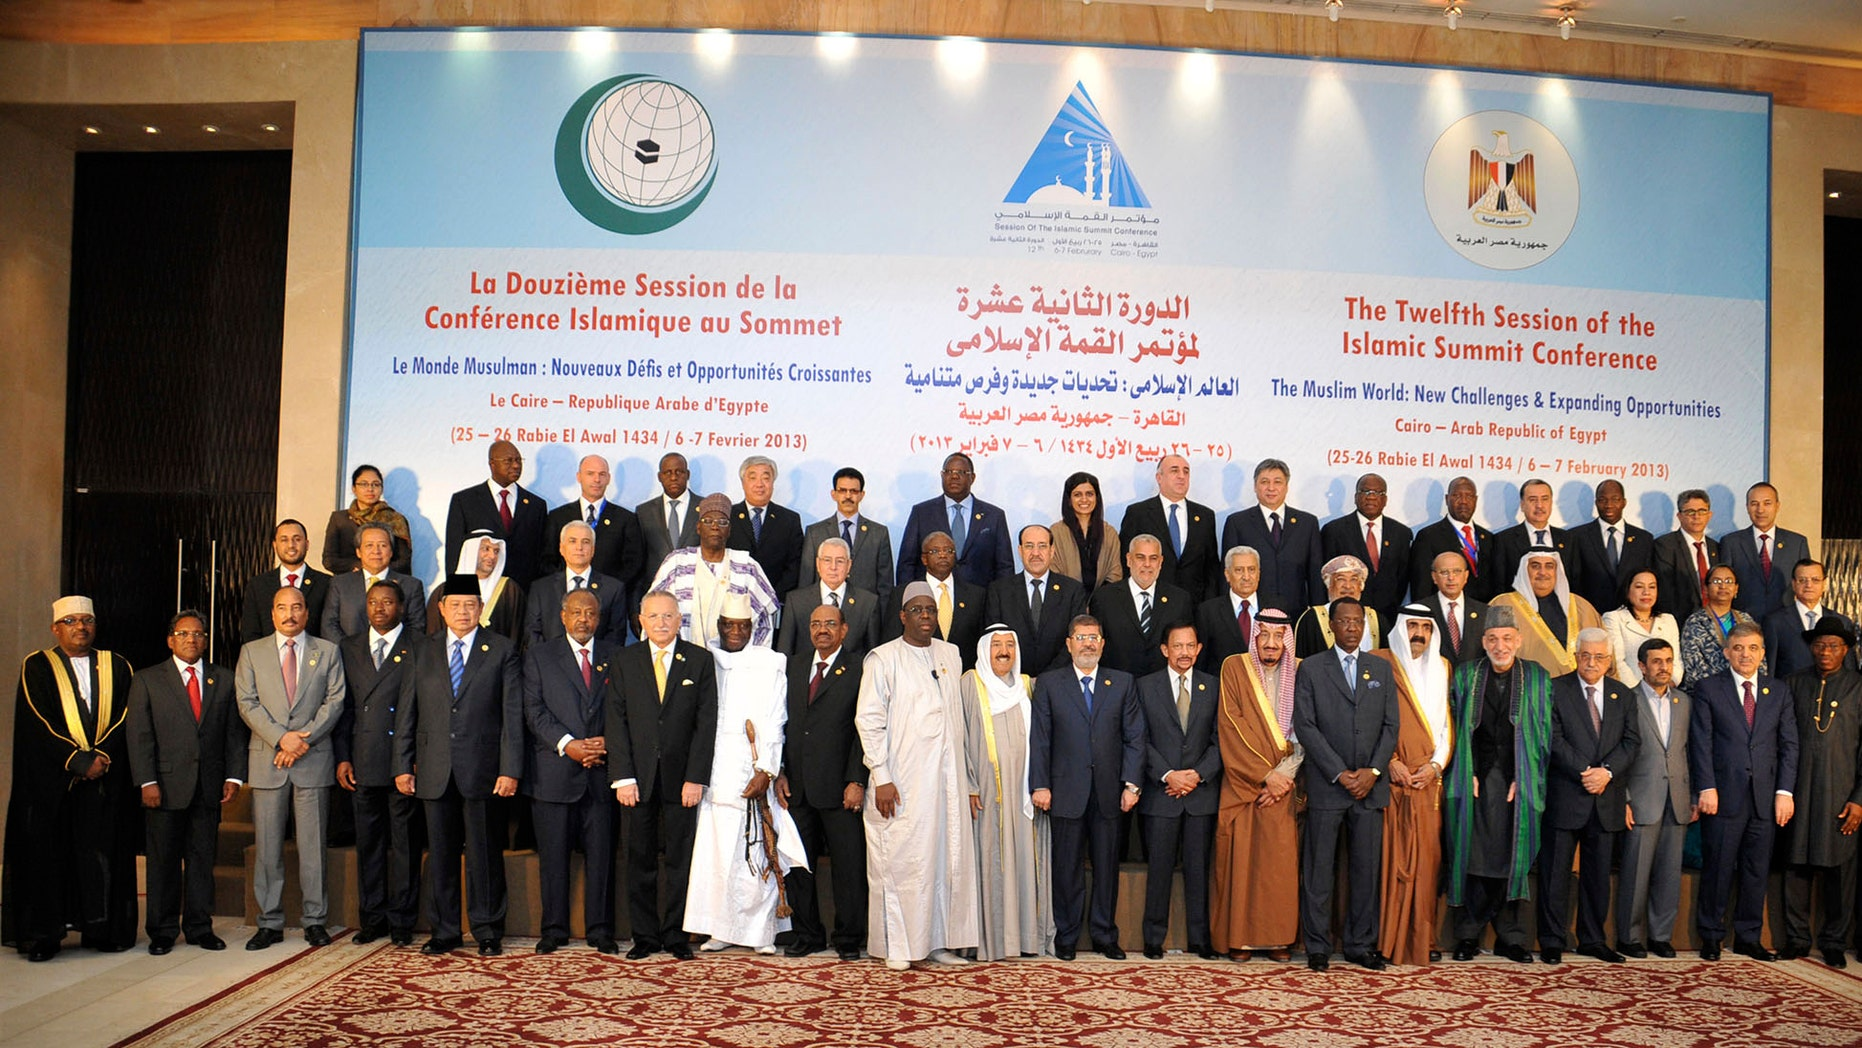 Feb. 6, 2013: In this photo released by the Egyptian Presidency, leaders of nations taking part in the Organization of Islamic Cooperation's two-day summit, which brings together leaders from across the Muslim world, pose for a group photograph in Cairo, Egypt.